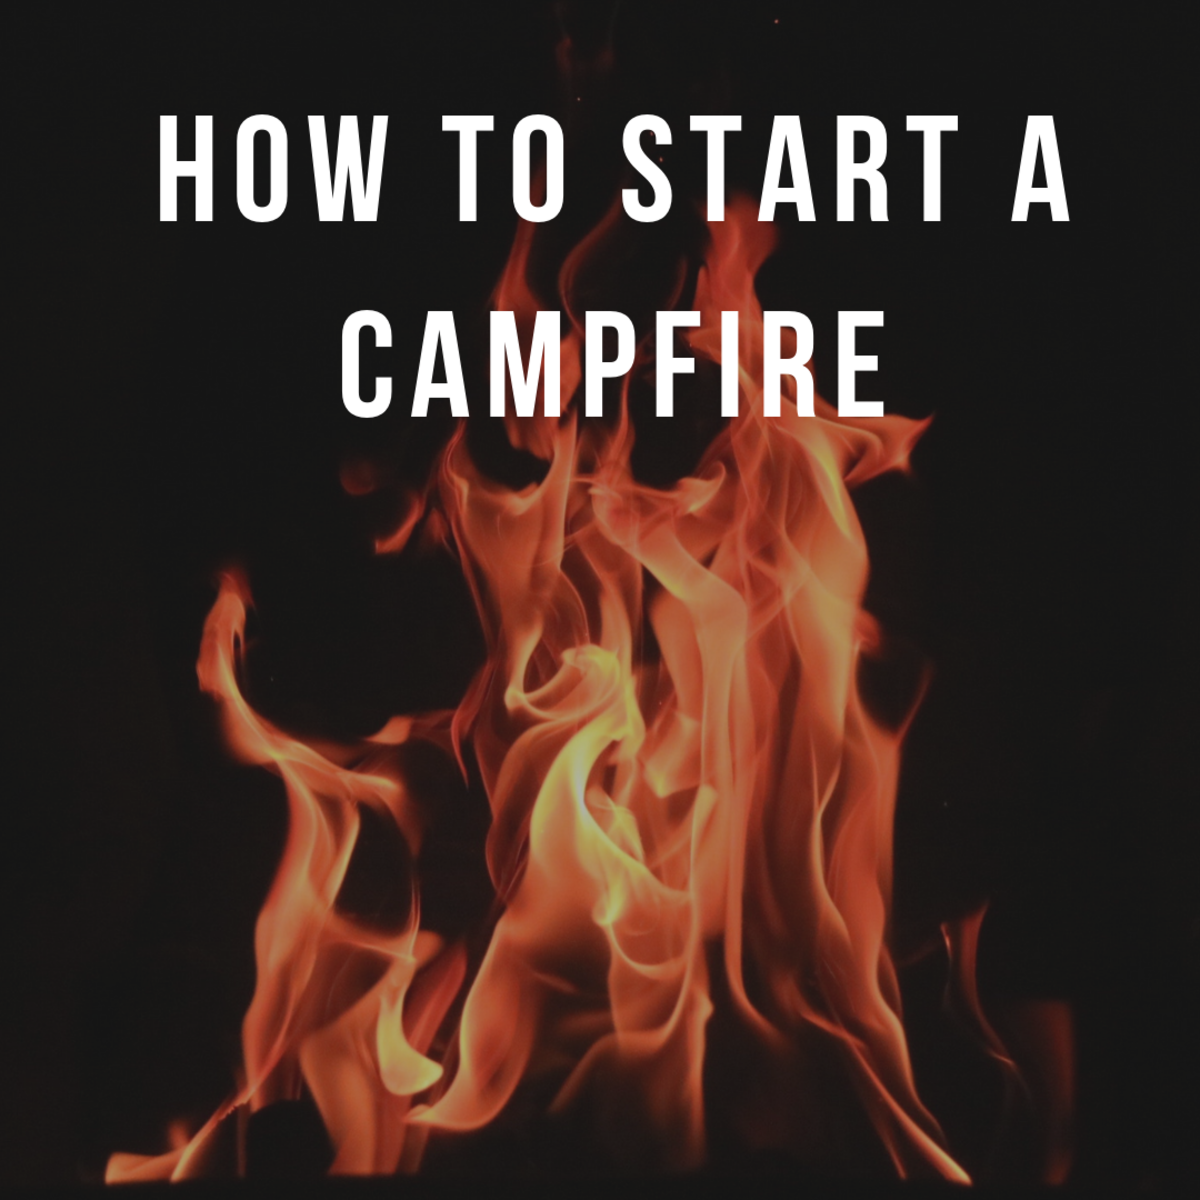 How to Start a Campfire With Matches and No Lighter